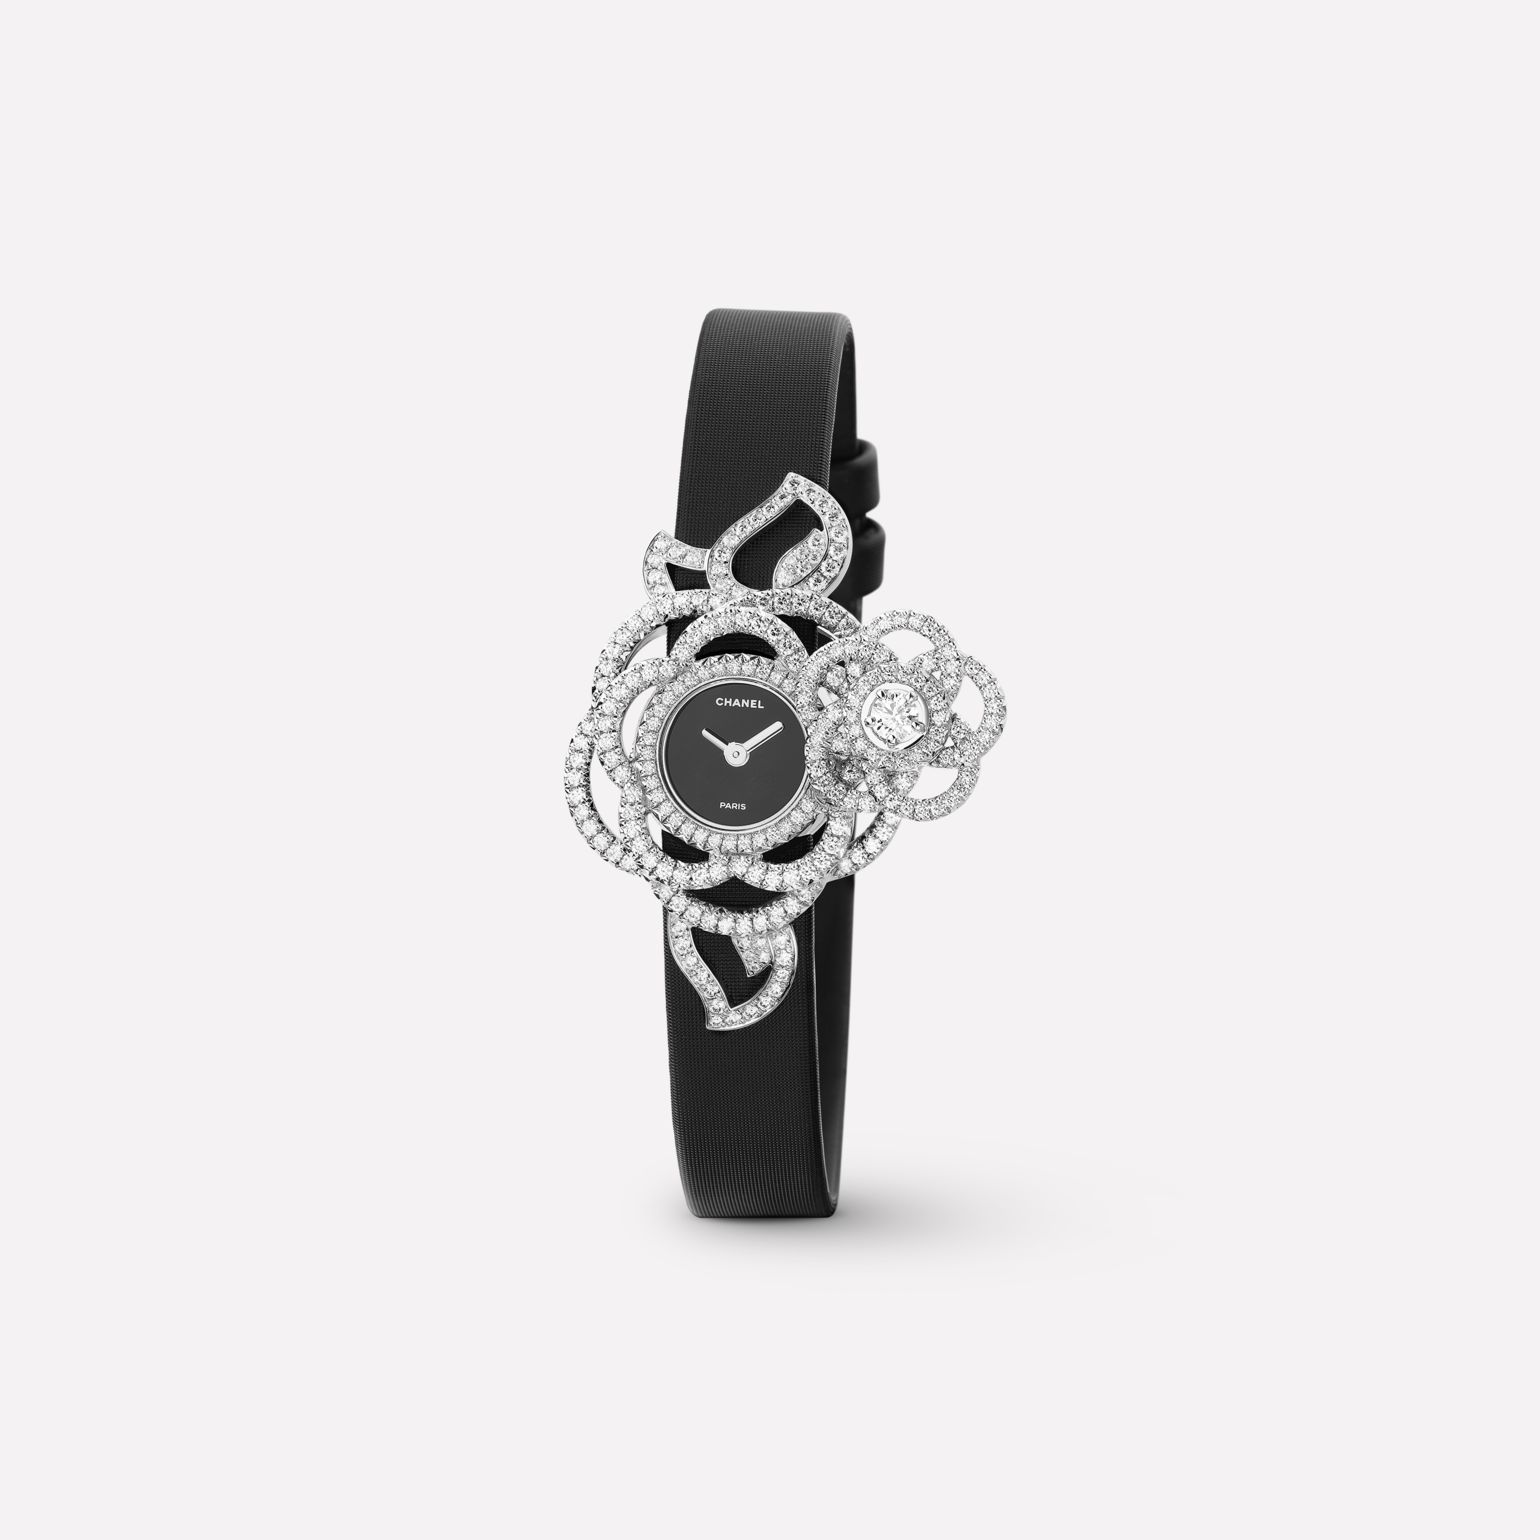 Camélia Jewellery Watch Secret watch with Camélia Brodé motif in 18K white gold and diamonds. Medium version.